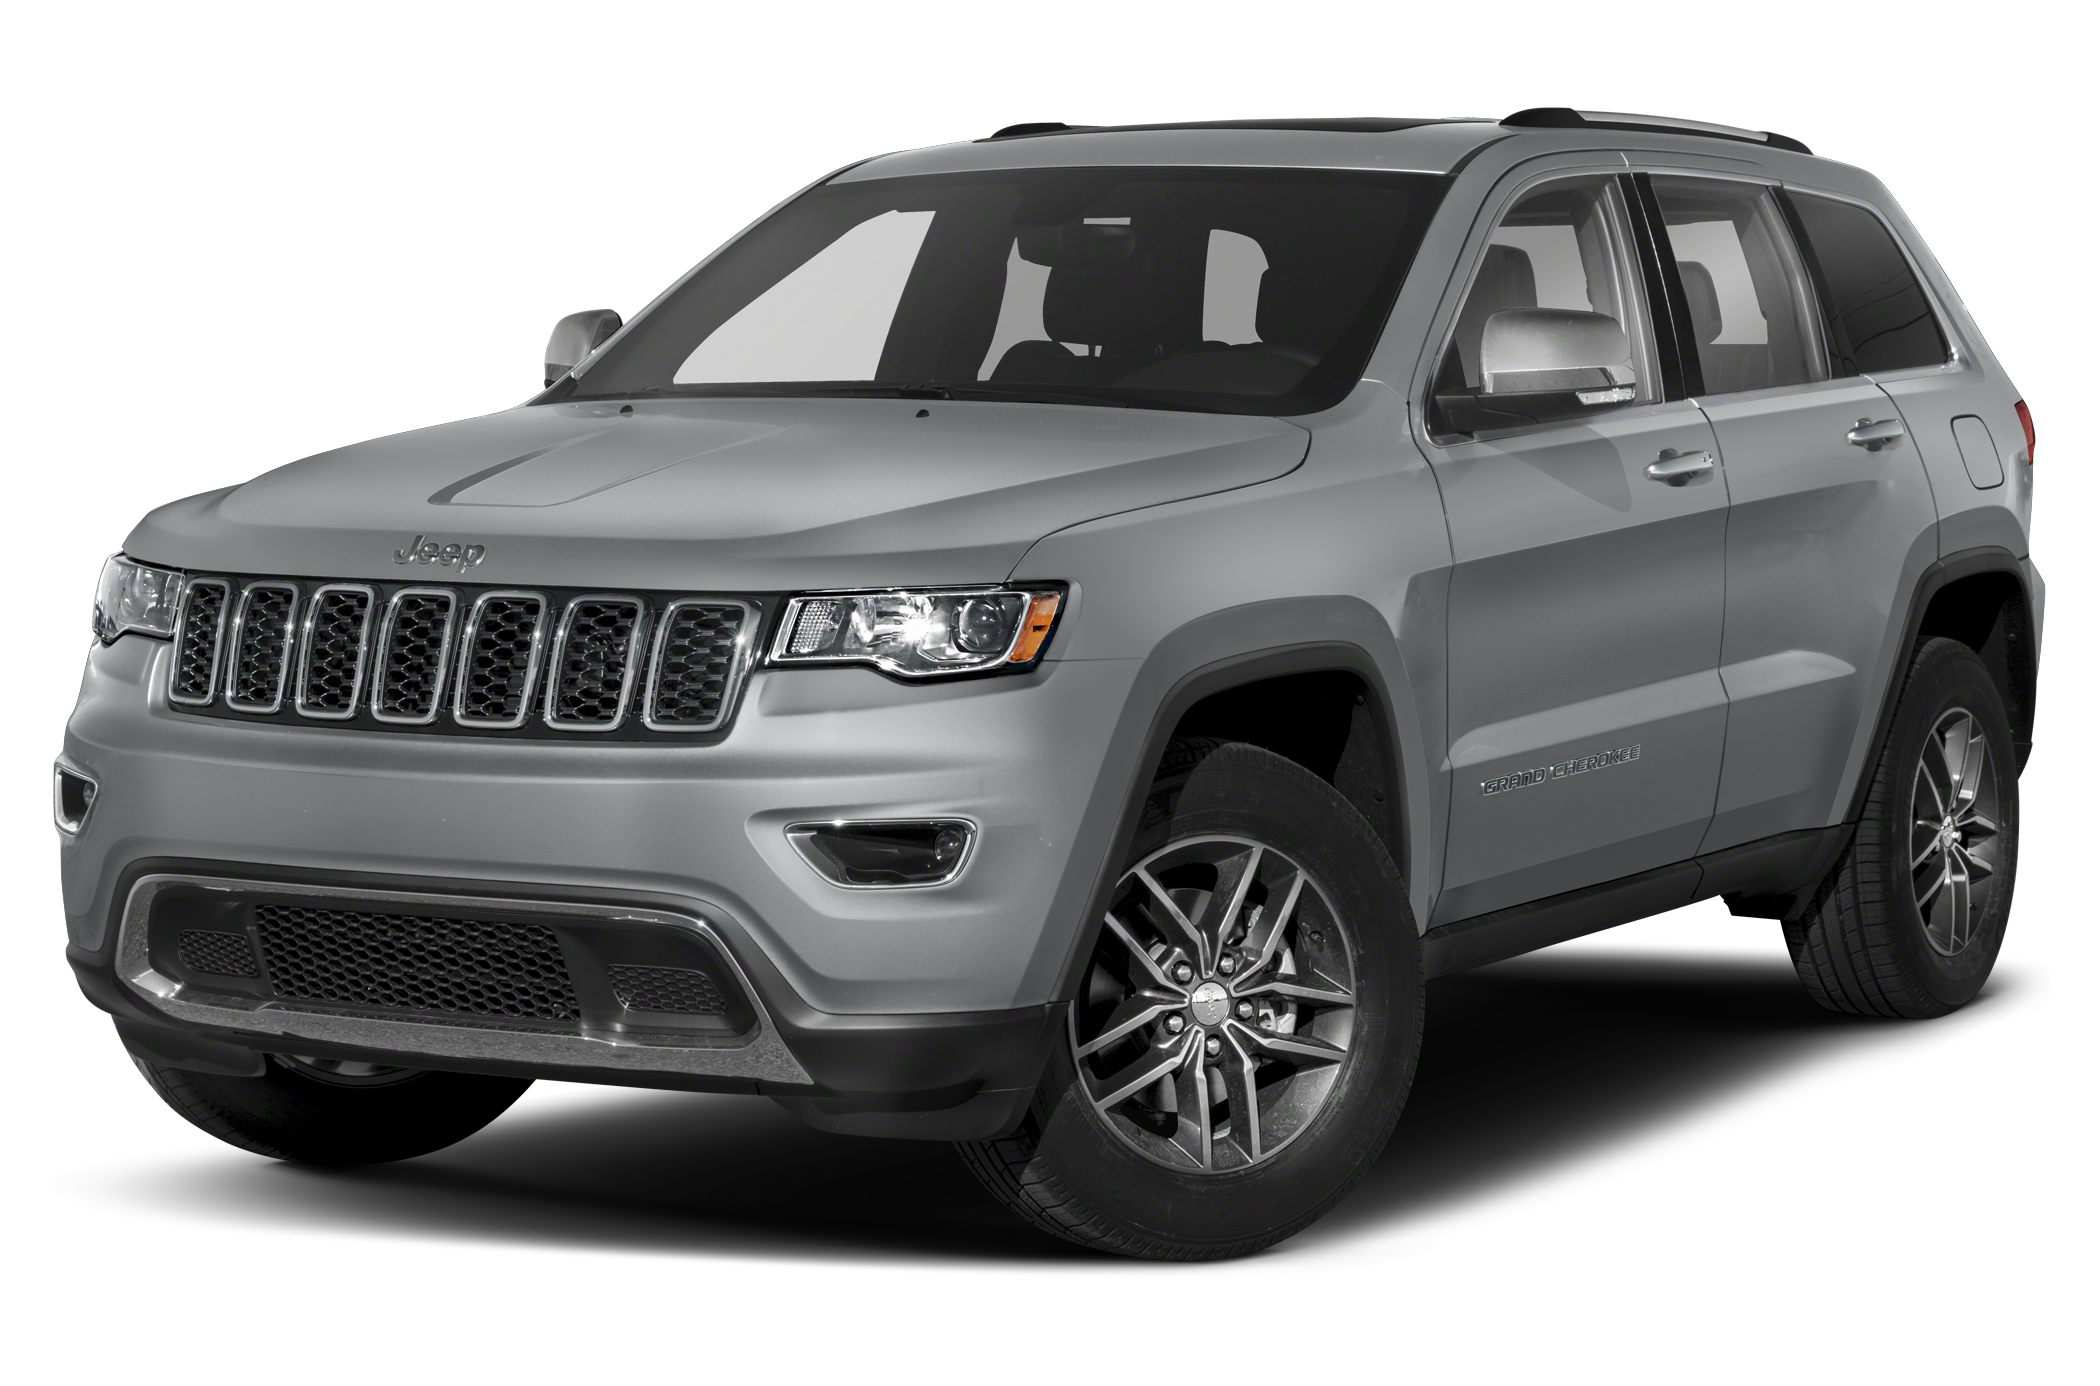 56 New 2020 Jeep Grand Cherokee Interior Exterior by 2020 Jeep Grand Cherokee Interior